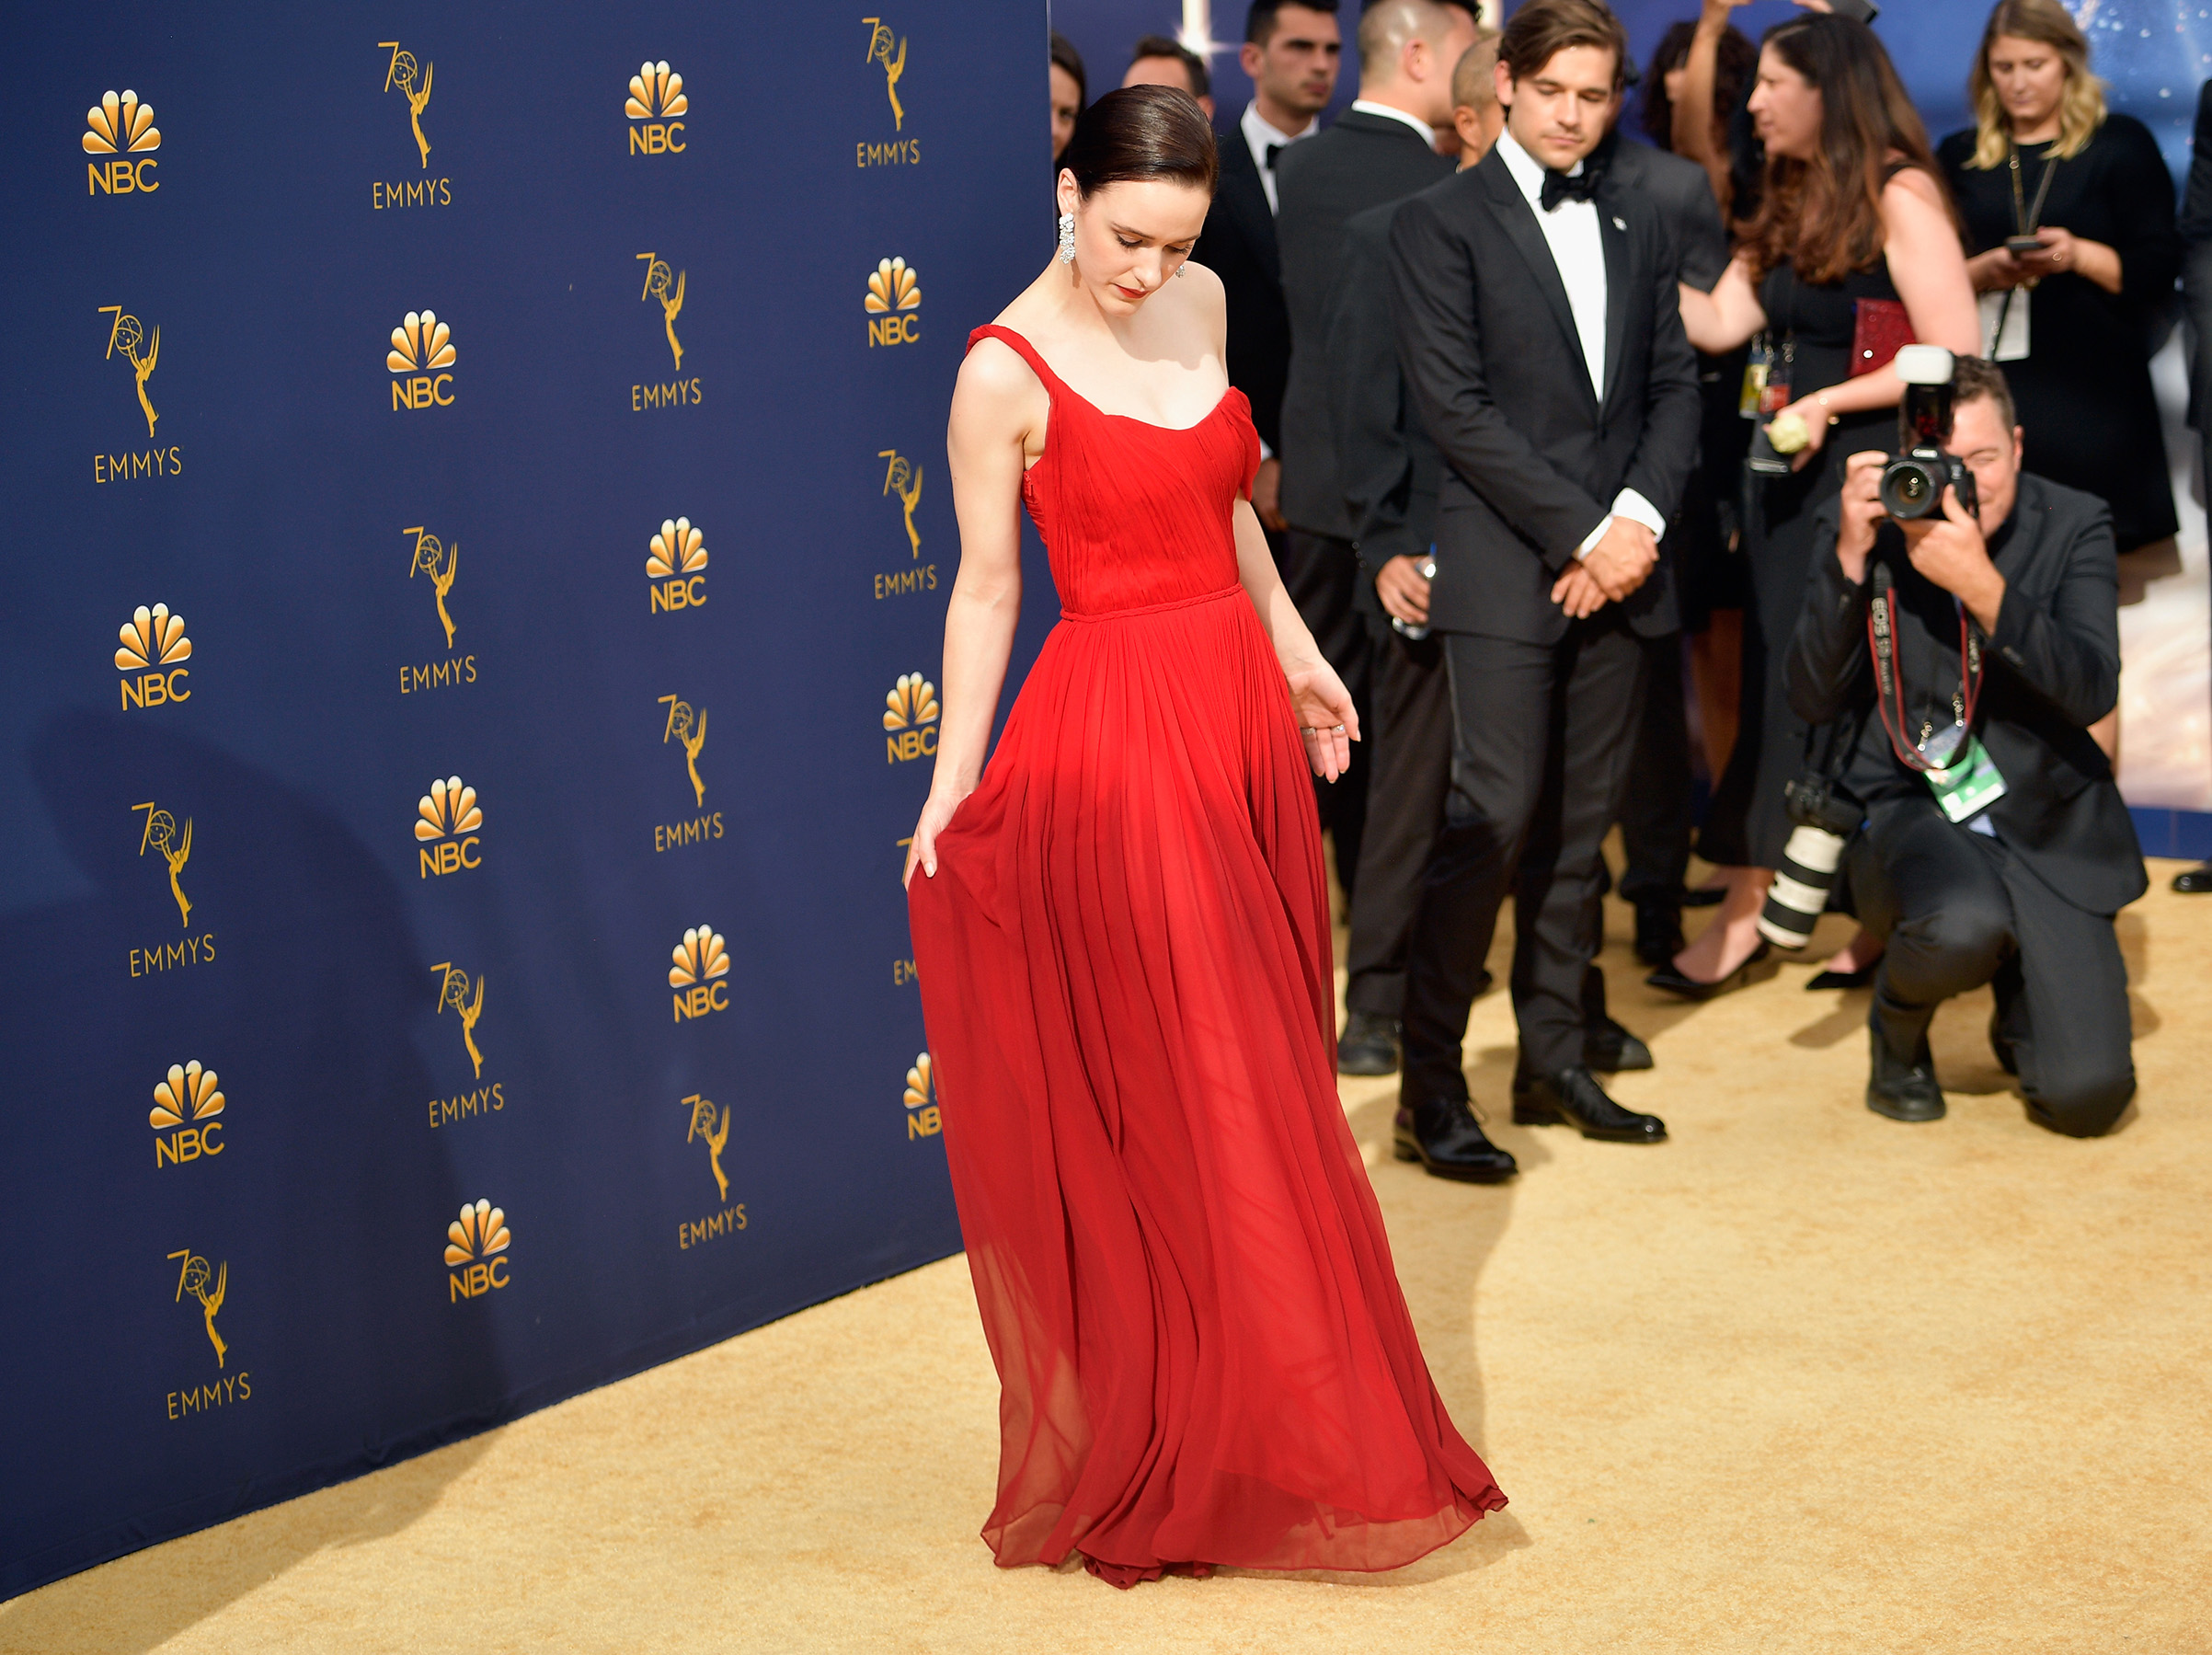 Rachel Brosnahan attends the 70th Emmy Awards on Sept. 17.